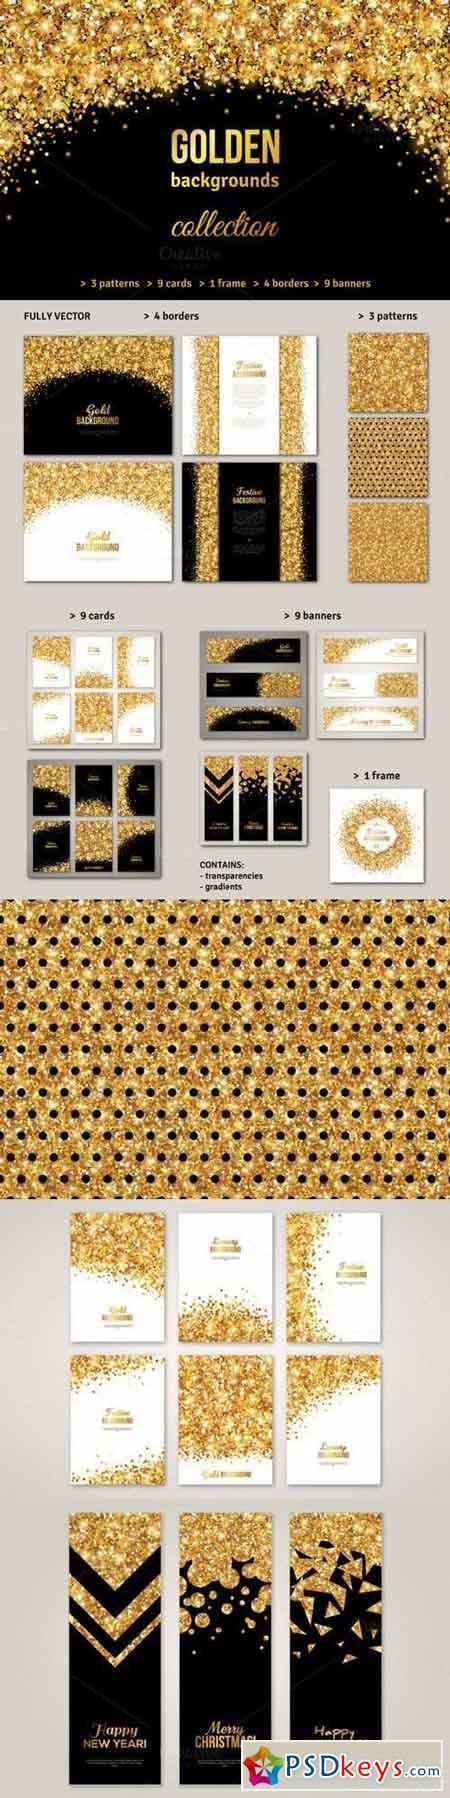 Gold Backgrounds Collection 670079   PSDkeys   Gold background